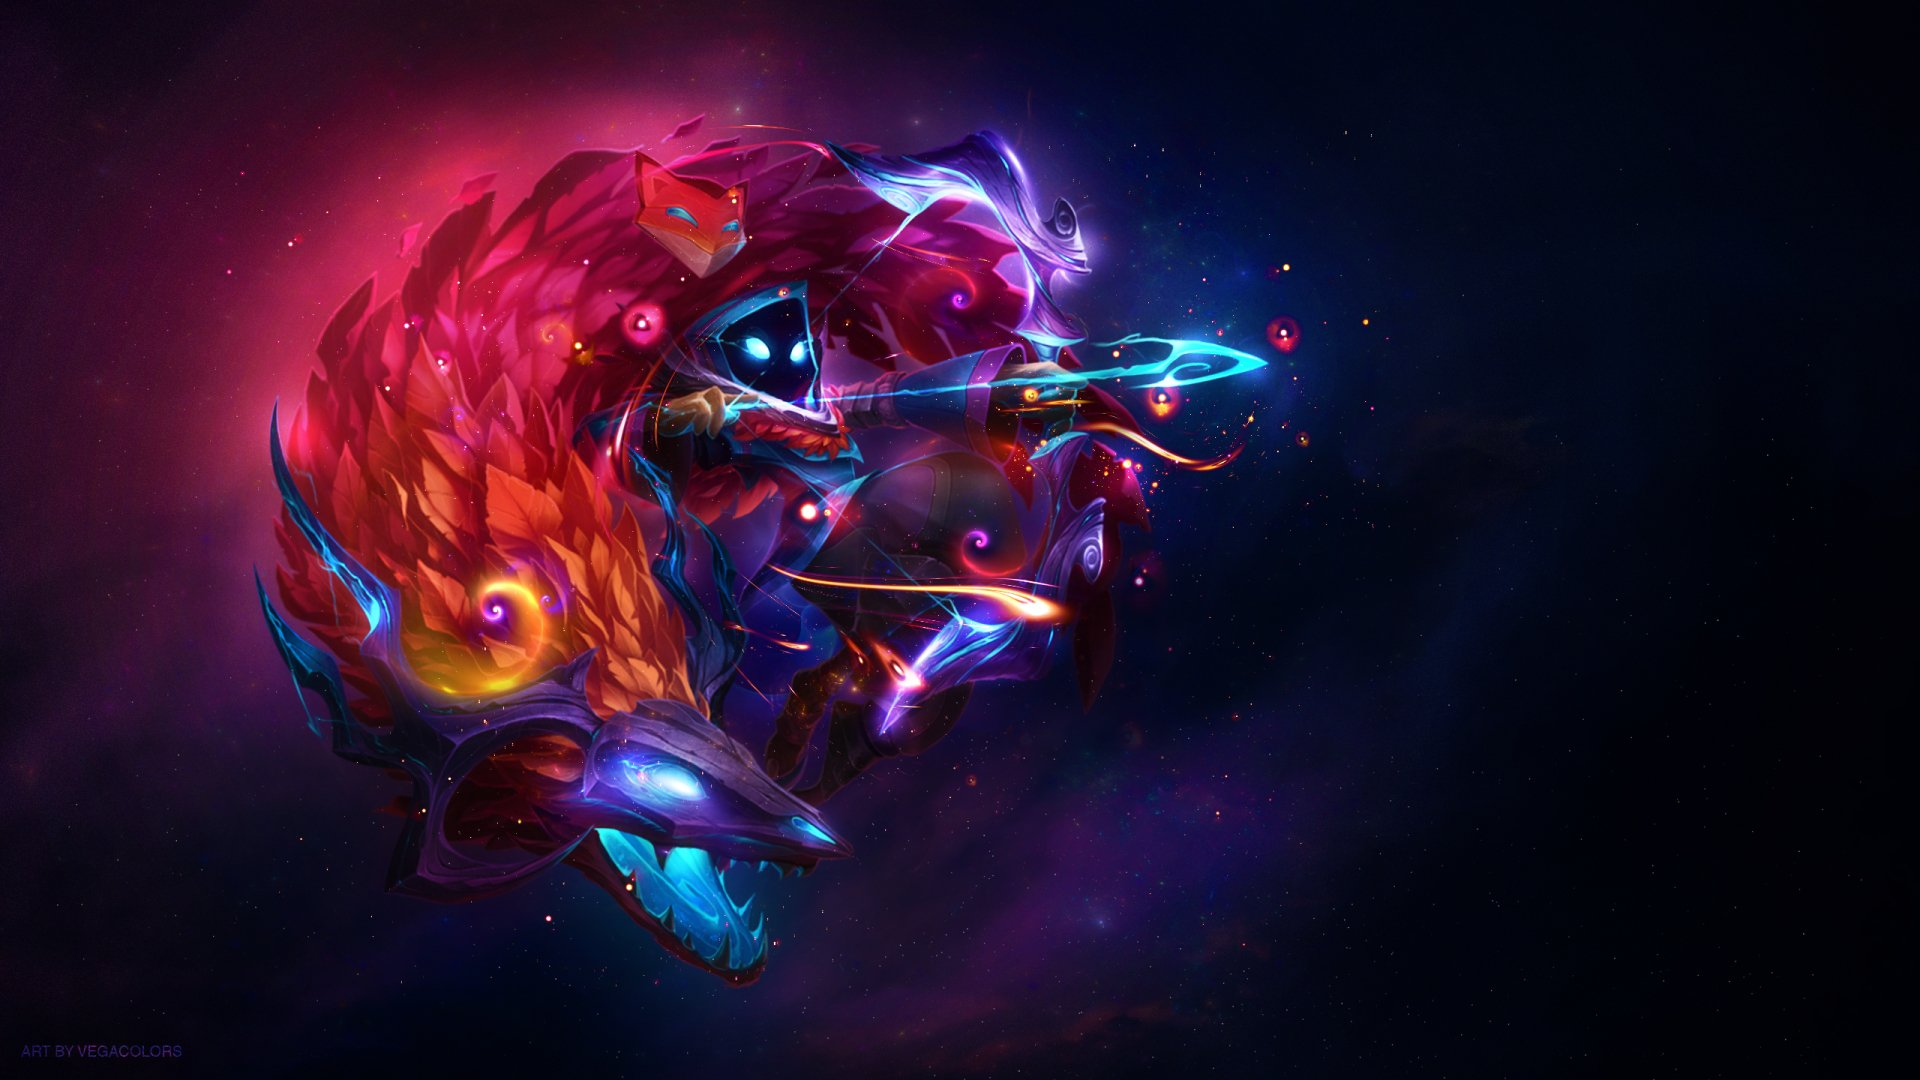 Video Game - League Of Legends  Kindred (League of Legends) Wallpaper